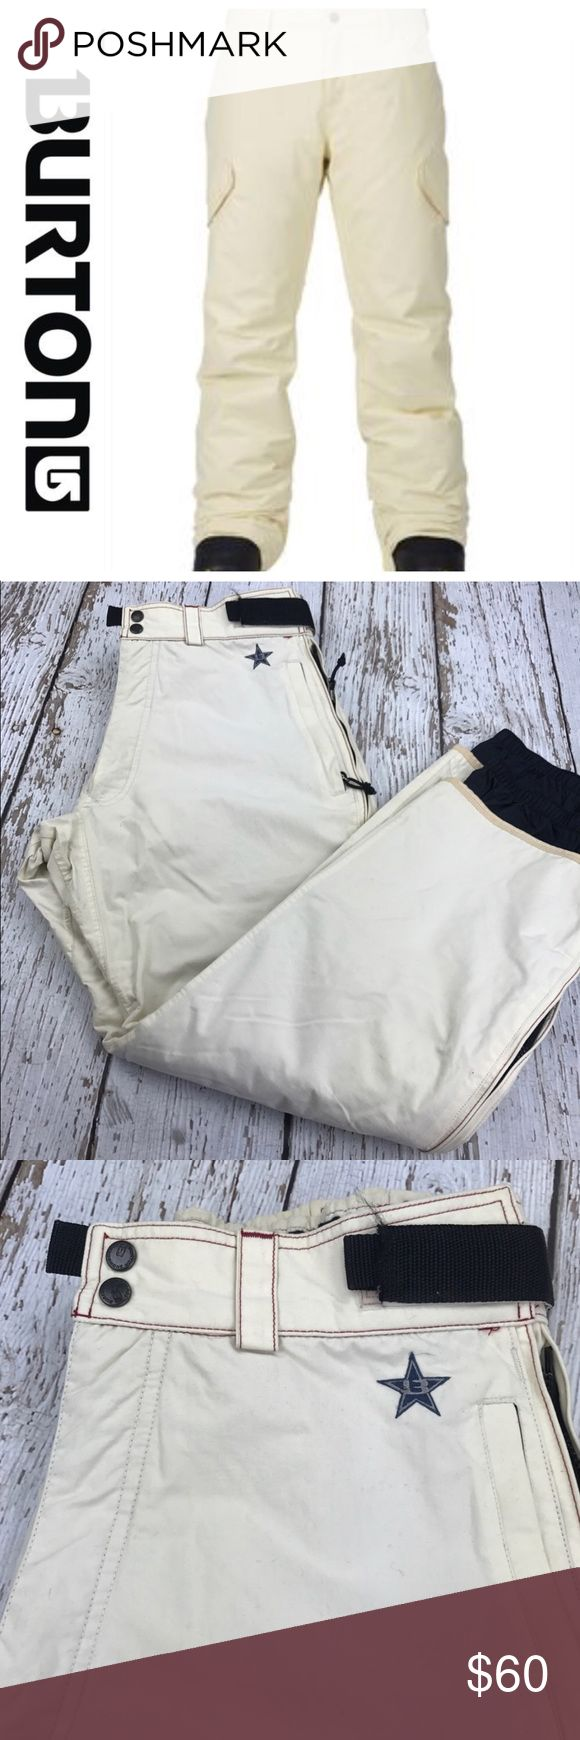 "💕SALE💕 Burton Ivory Snowboard Pants Fabulous 💕SALE💕 Burton Ivory Snowboard Pants 30"" Inseam 17"" across the Waist laying flat Burton Pants"